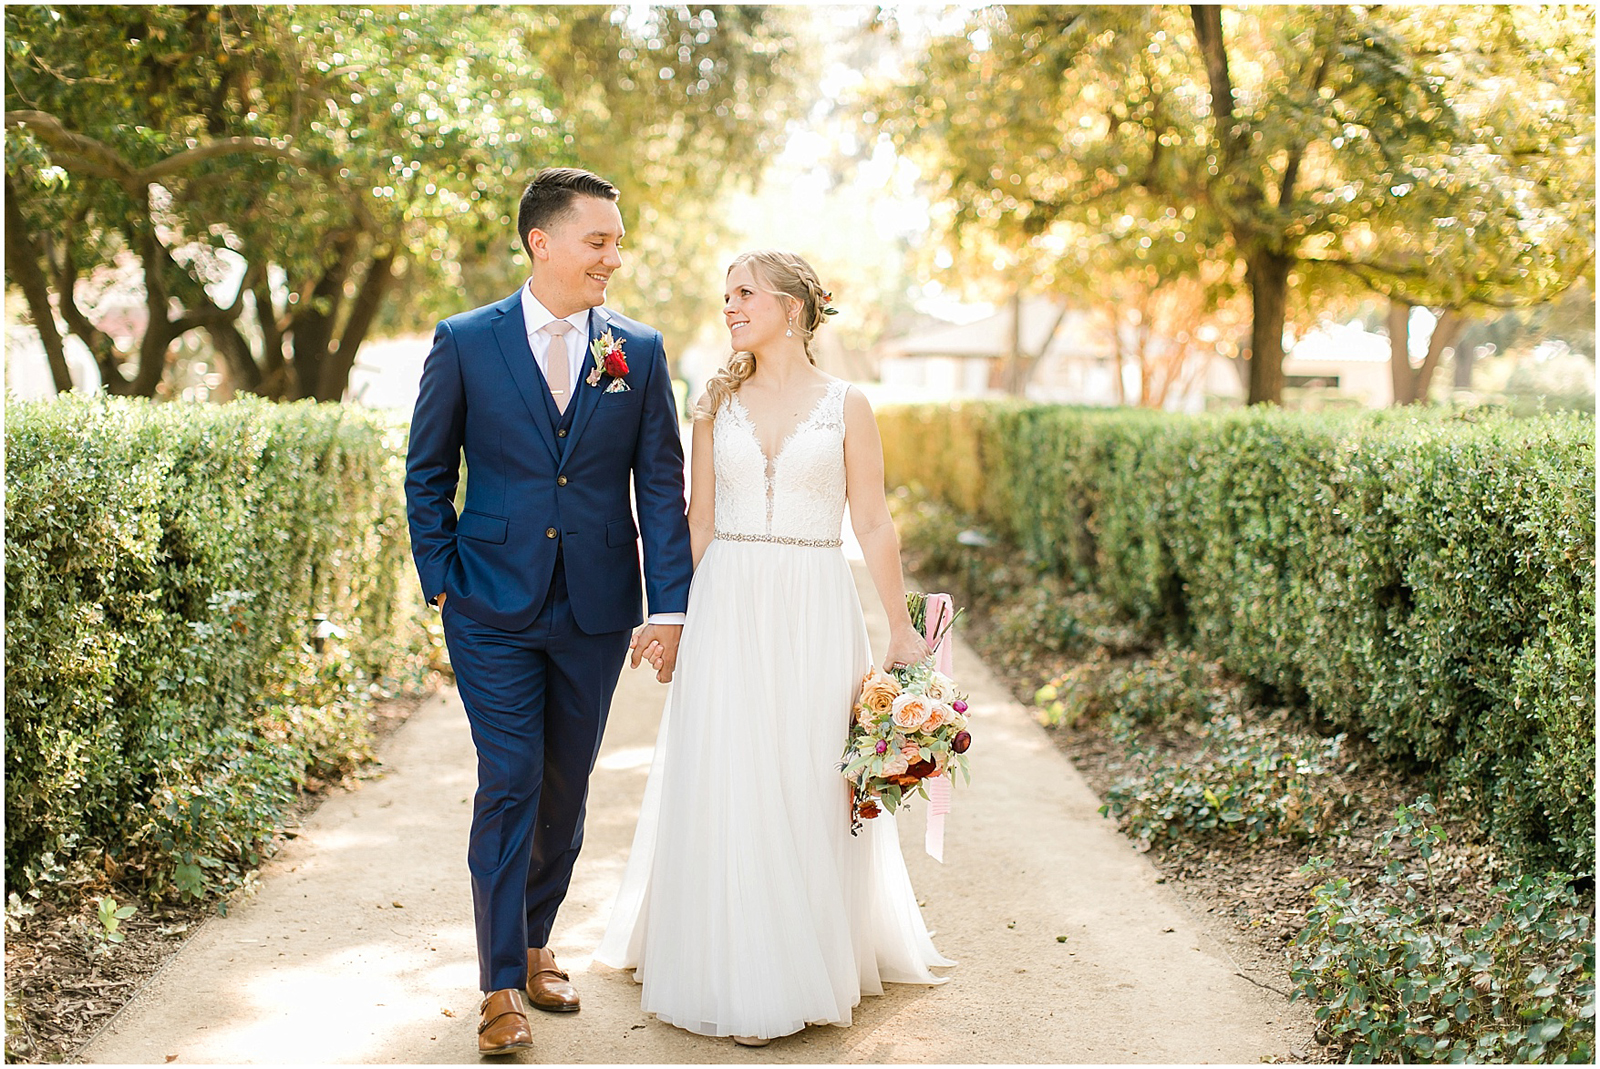 Karen & Michael's Wedding by Hailey Ayson Photography at The Maples Woodland